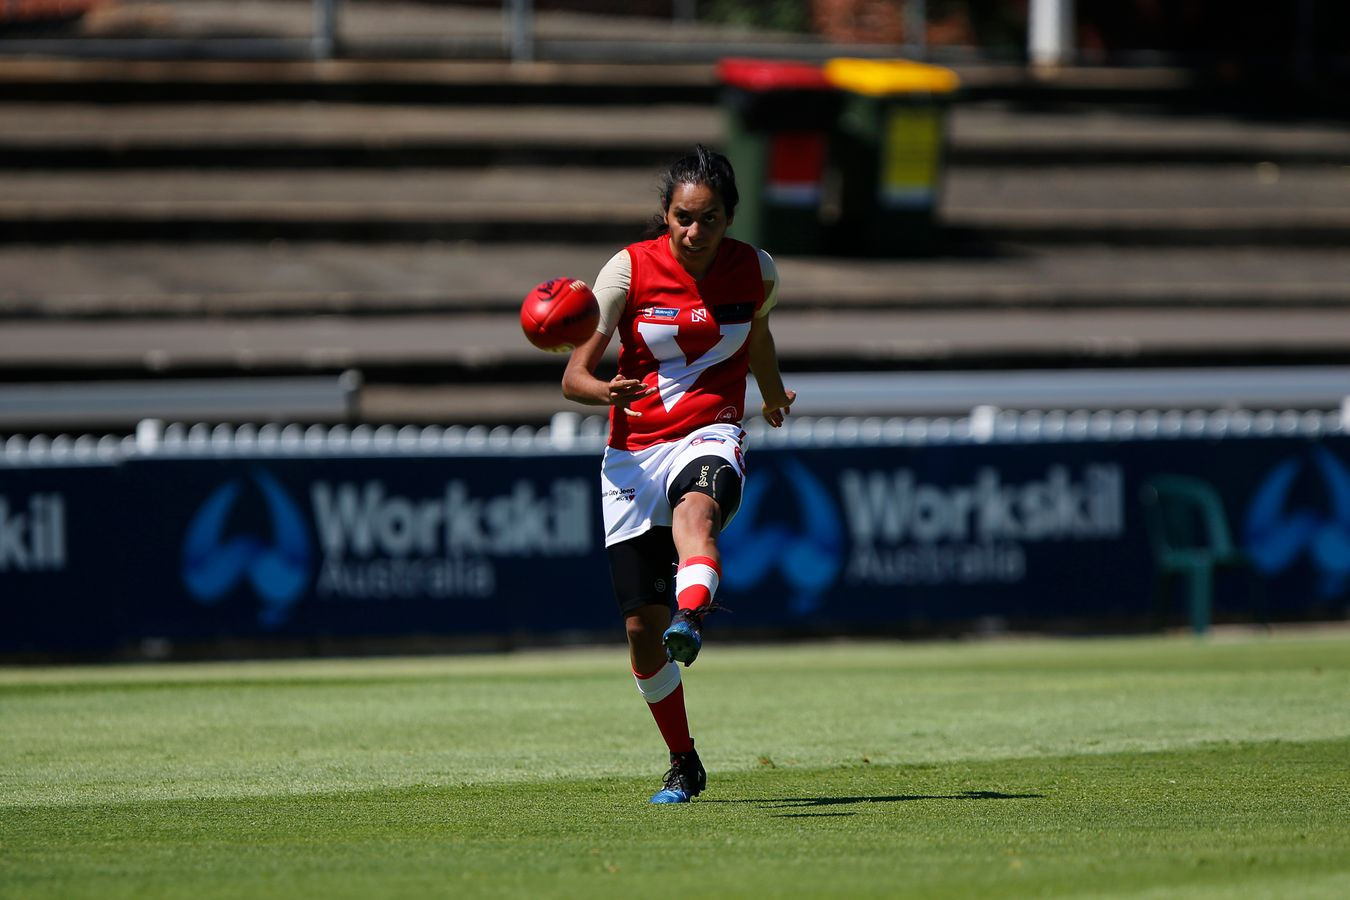 d79509f591c8 News and Events - The Official North Adelaide Football Club Website ...